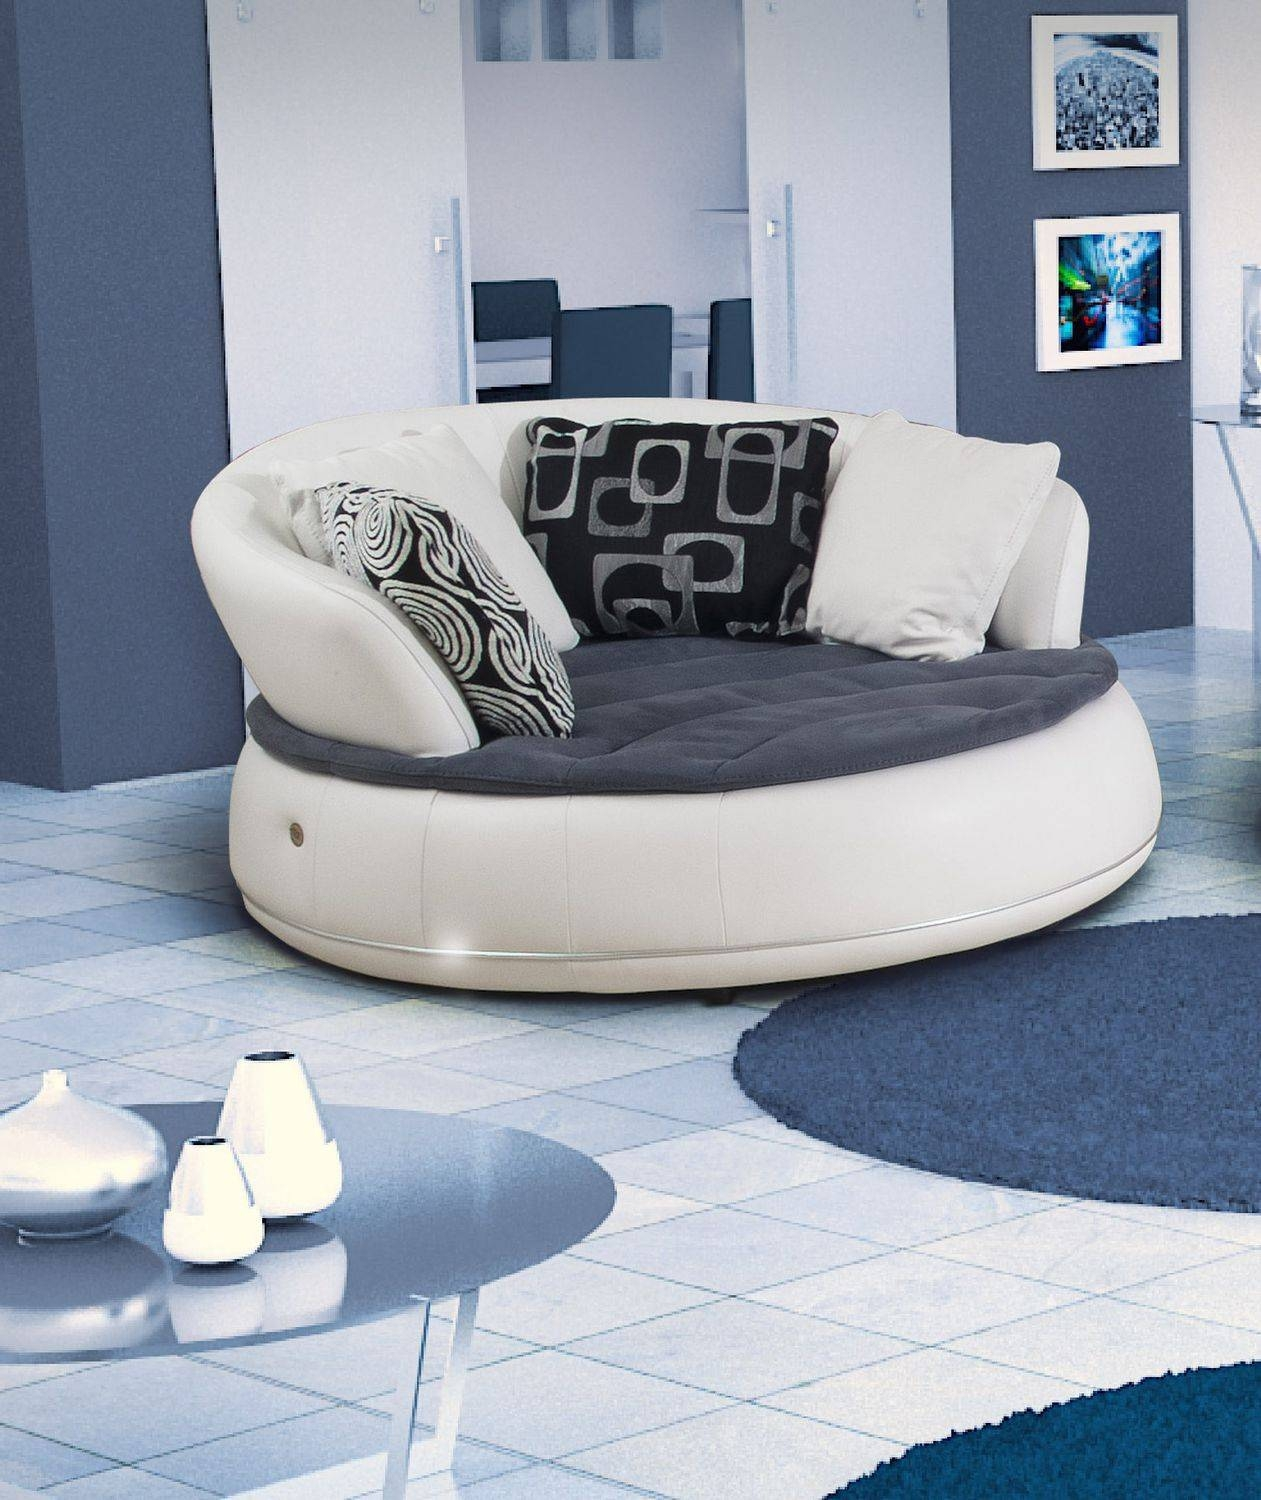 Semicircular Sofa / Round / Contemporary / Leather - Espace - Nieri within Semicircular Sofa (Image 24 of 30)